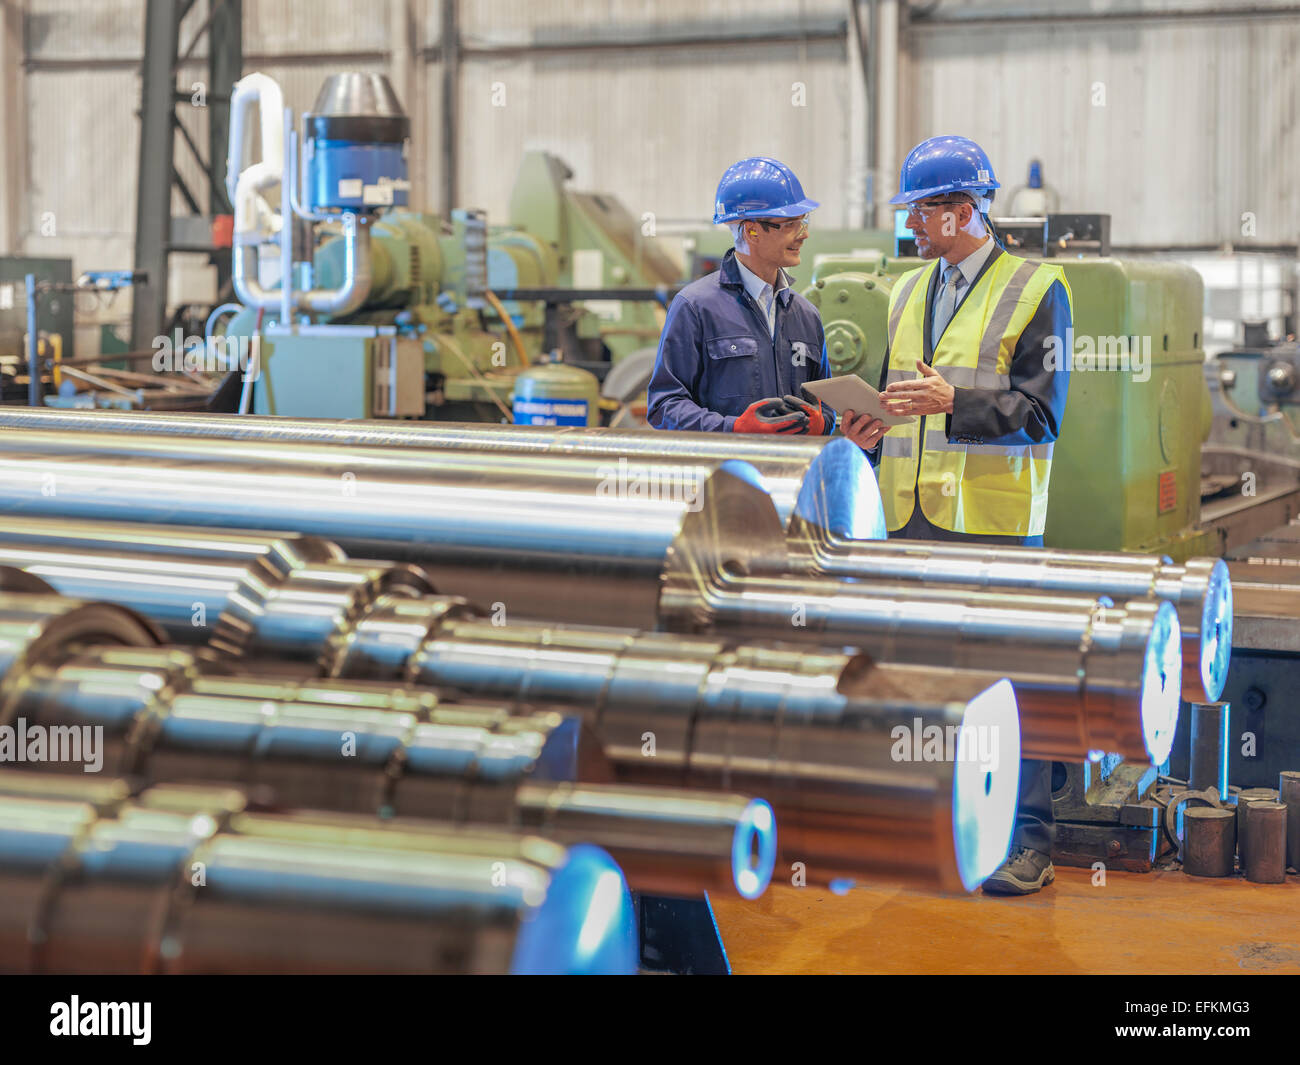 Engineers inspecting finished steel rollers in engineering factory - Stock Image